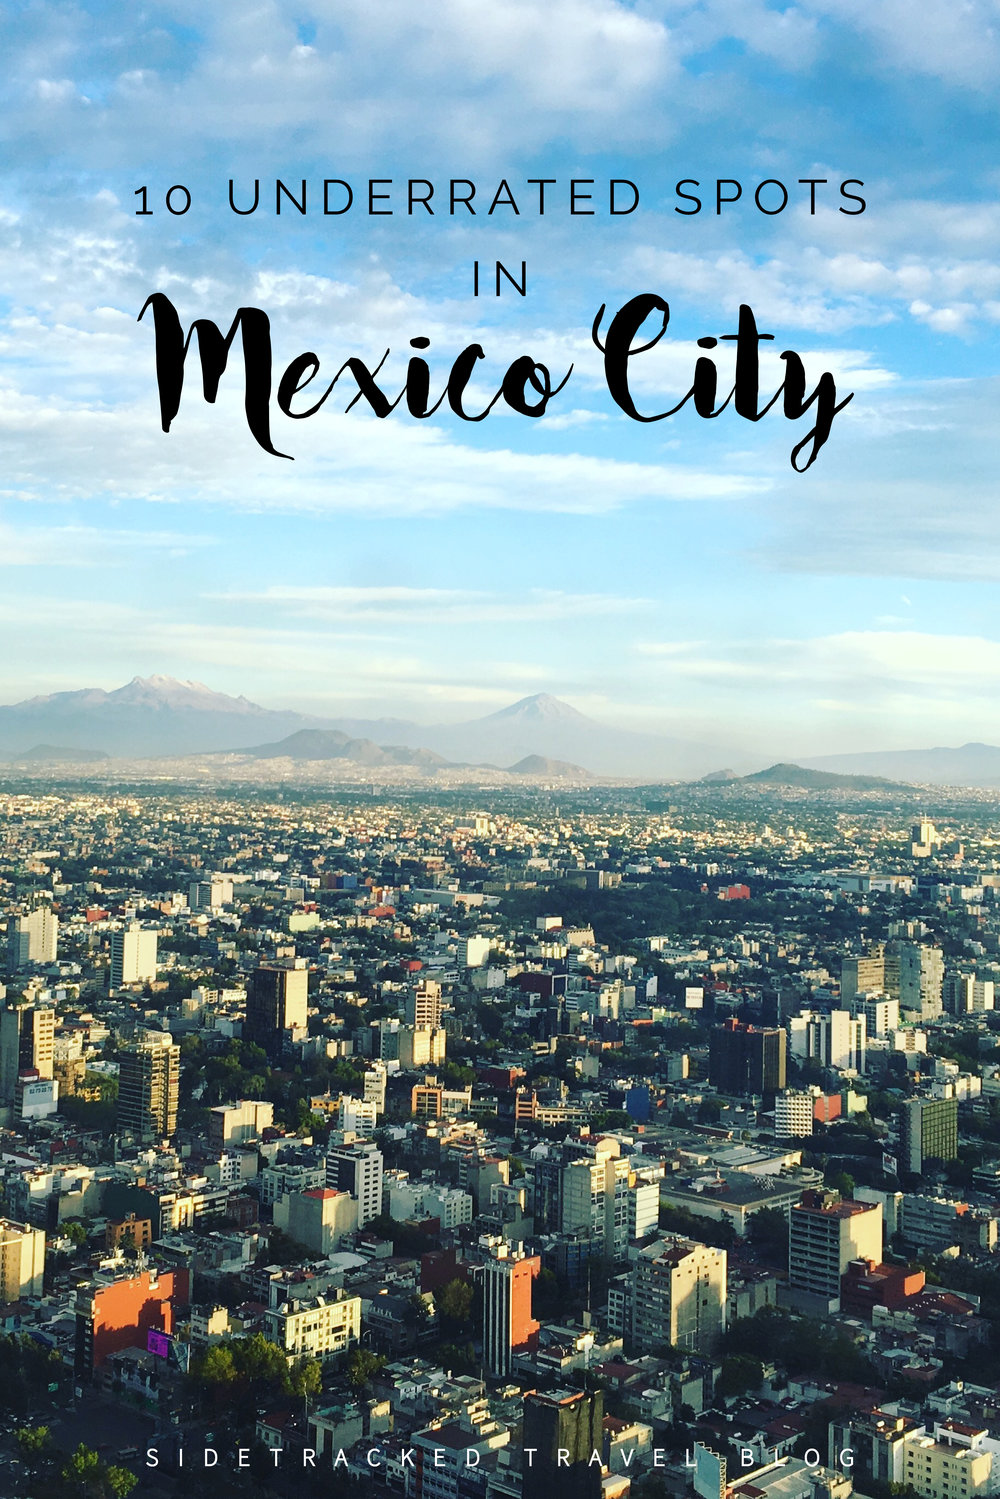 If you're in the midst of planning out your trip to Mexico City and feeling a bit overwhelmed by the world's tenth largest city, I've put together this list of 10 underrated spots well worth visiting.